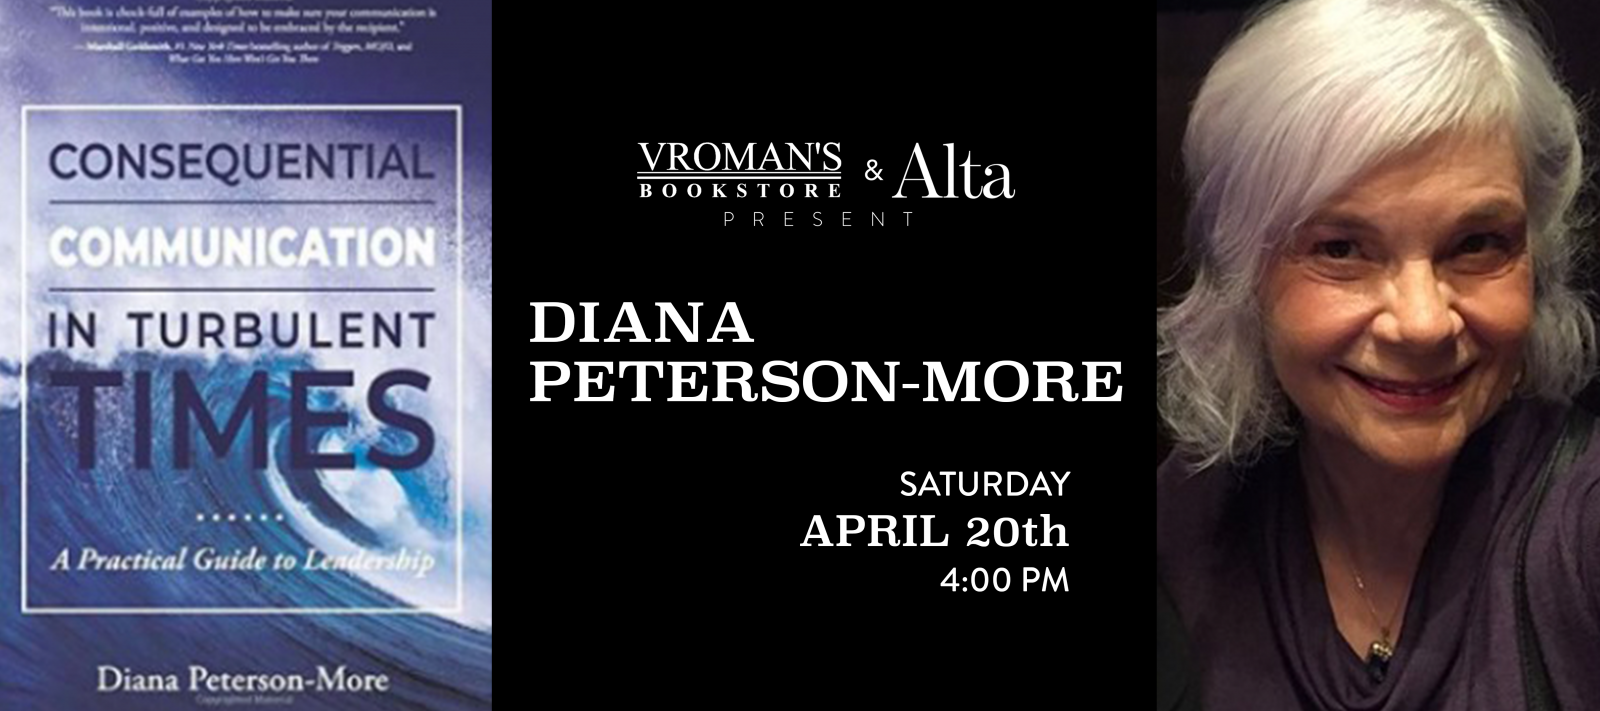 Diana Peterson-More signing